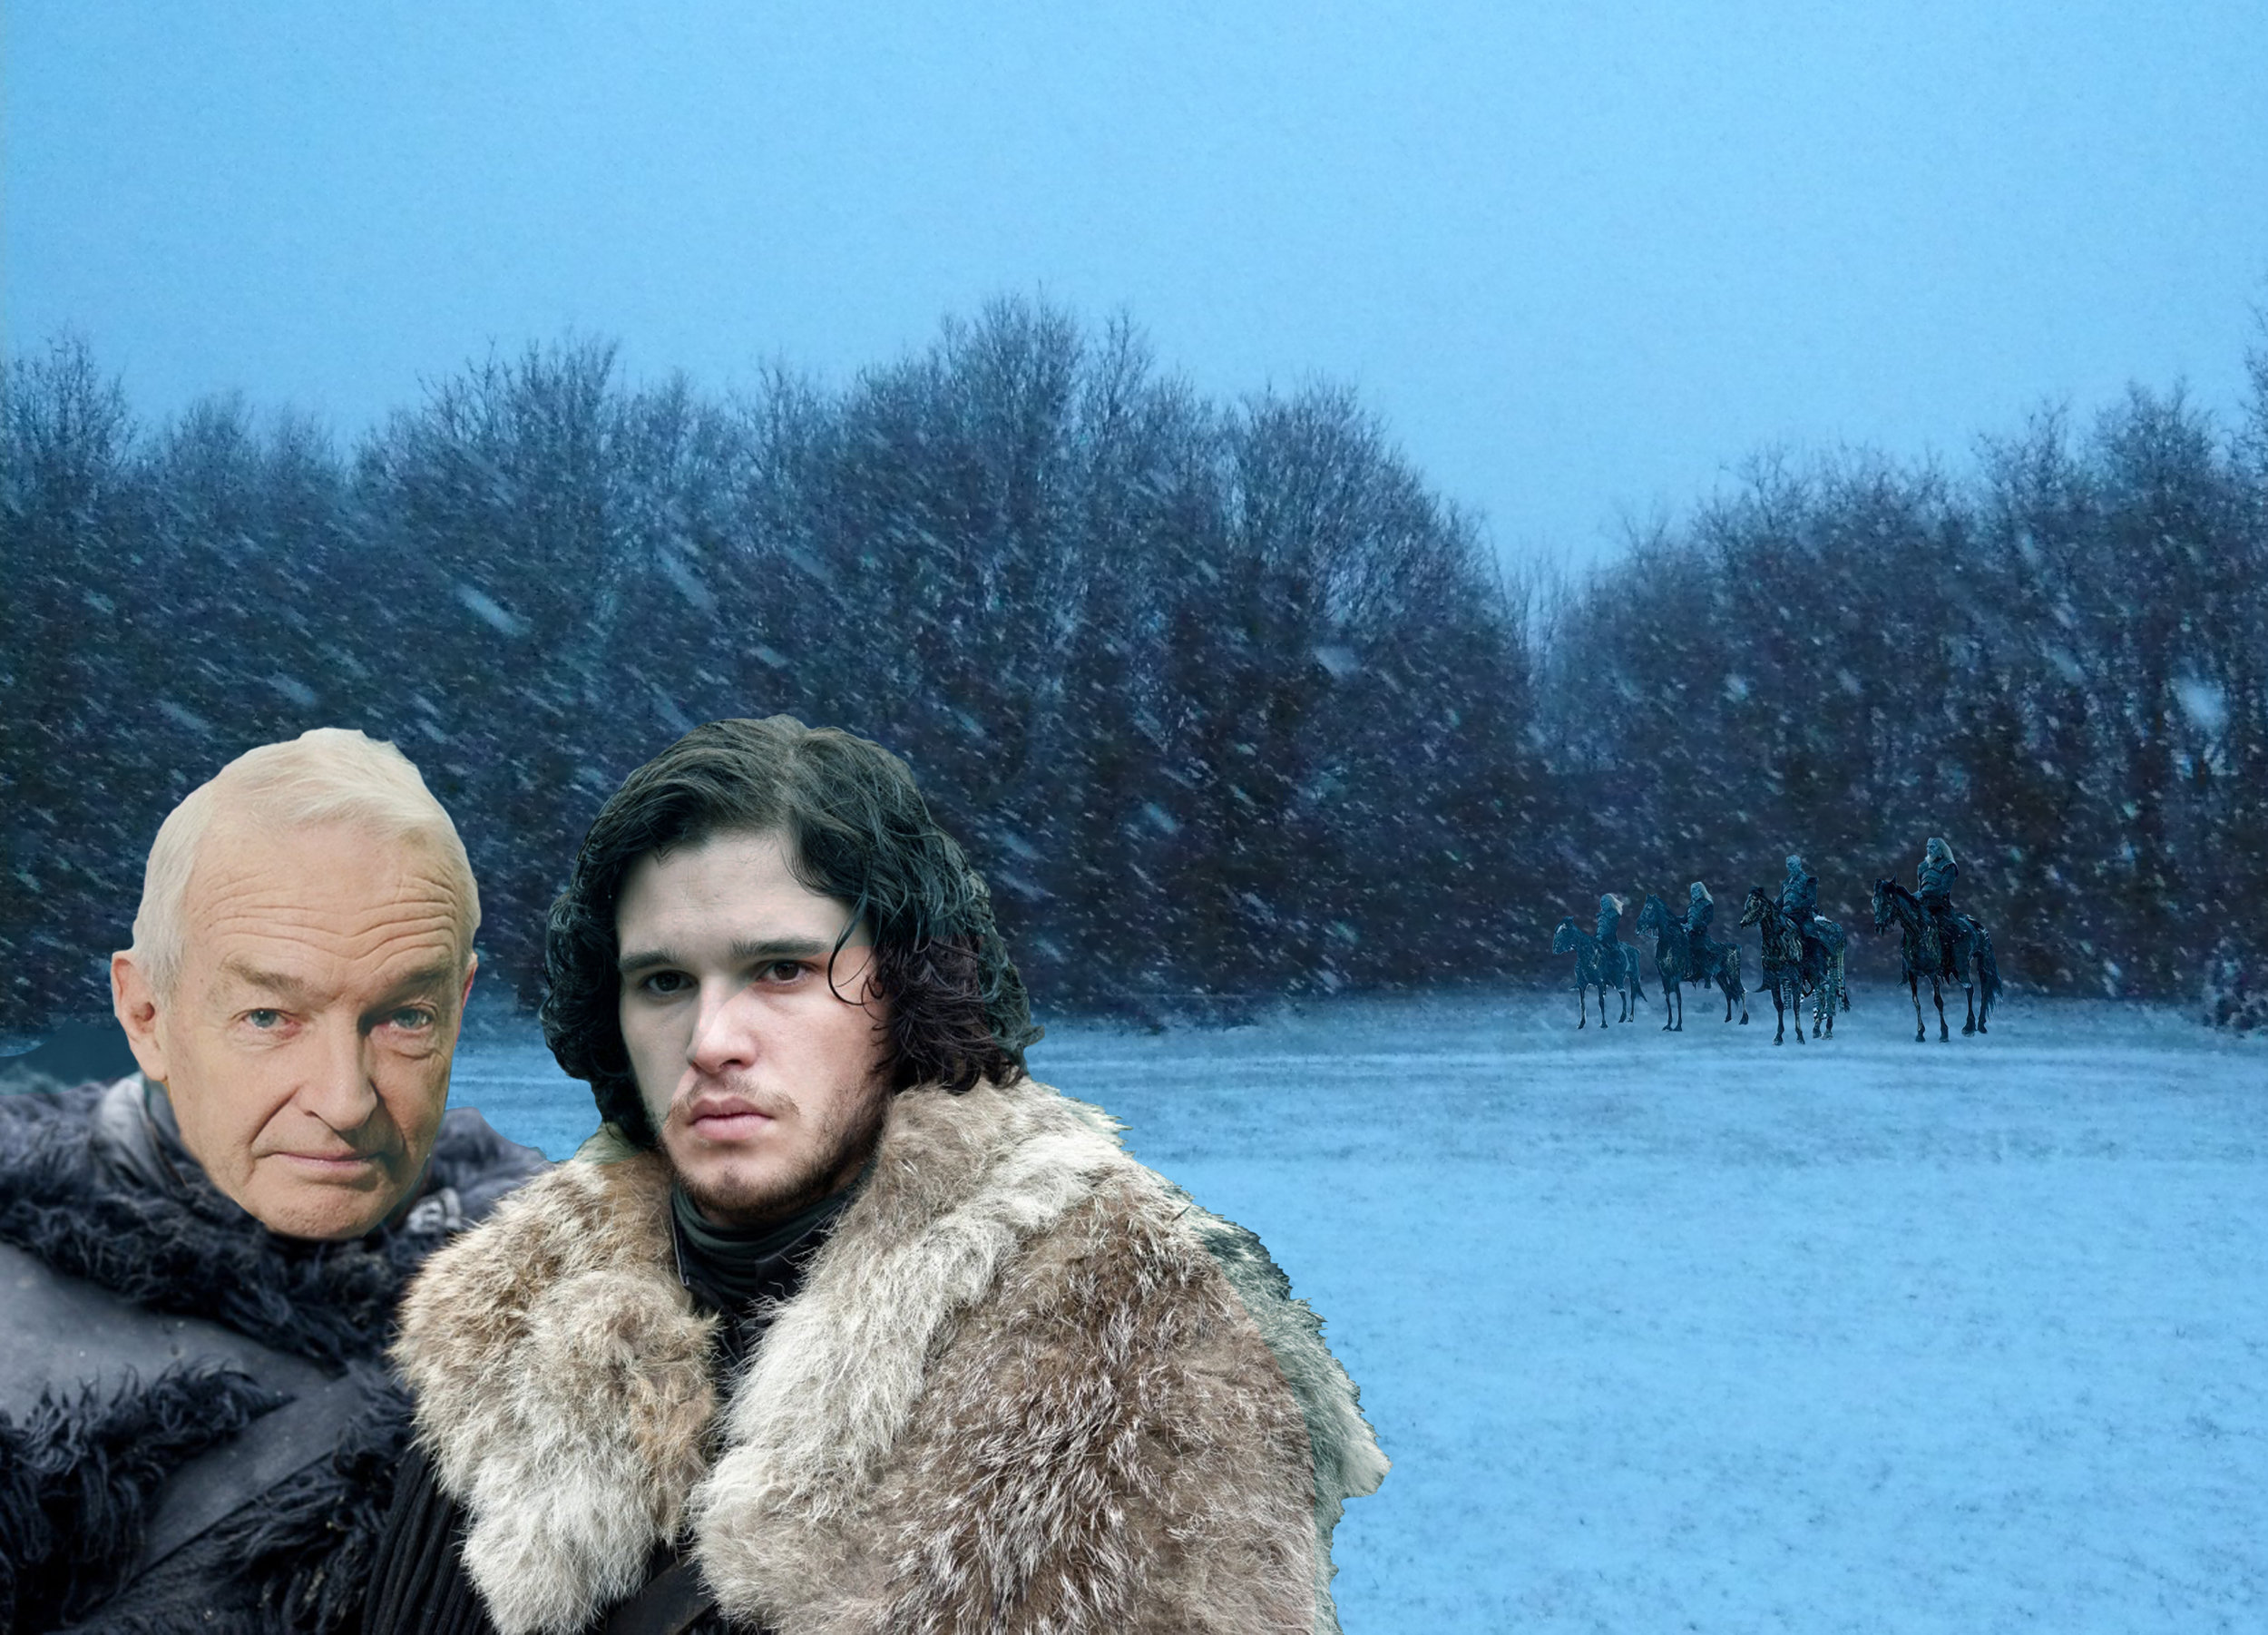 Newsreaders and mythical characters from made up worlds were caught out by the sudden blizzard